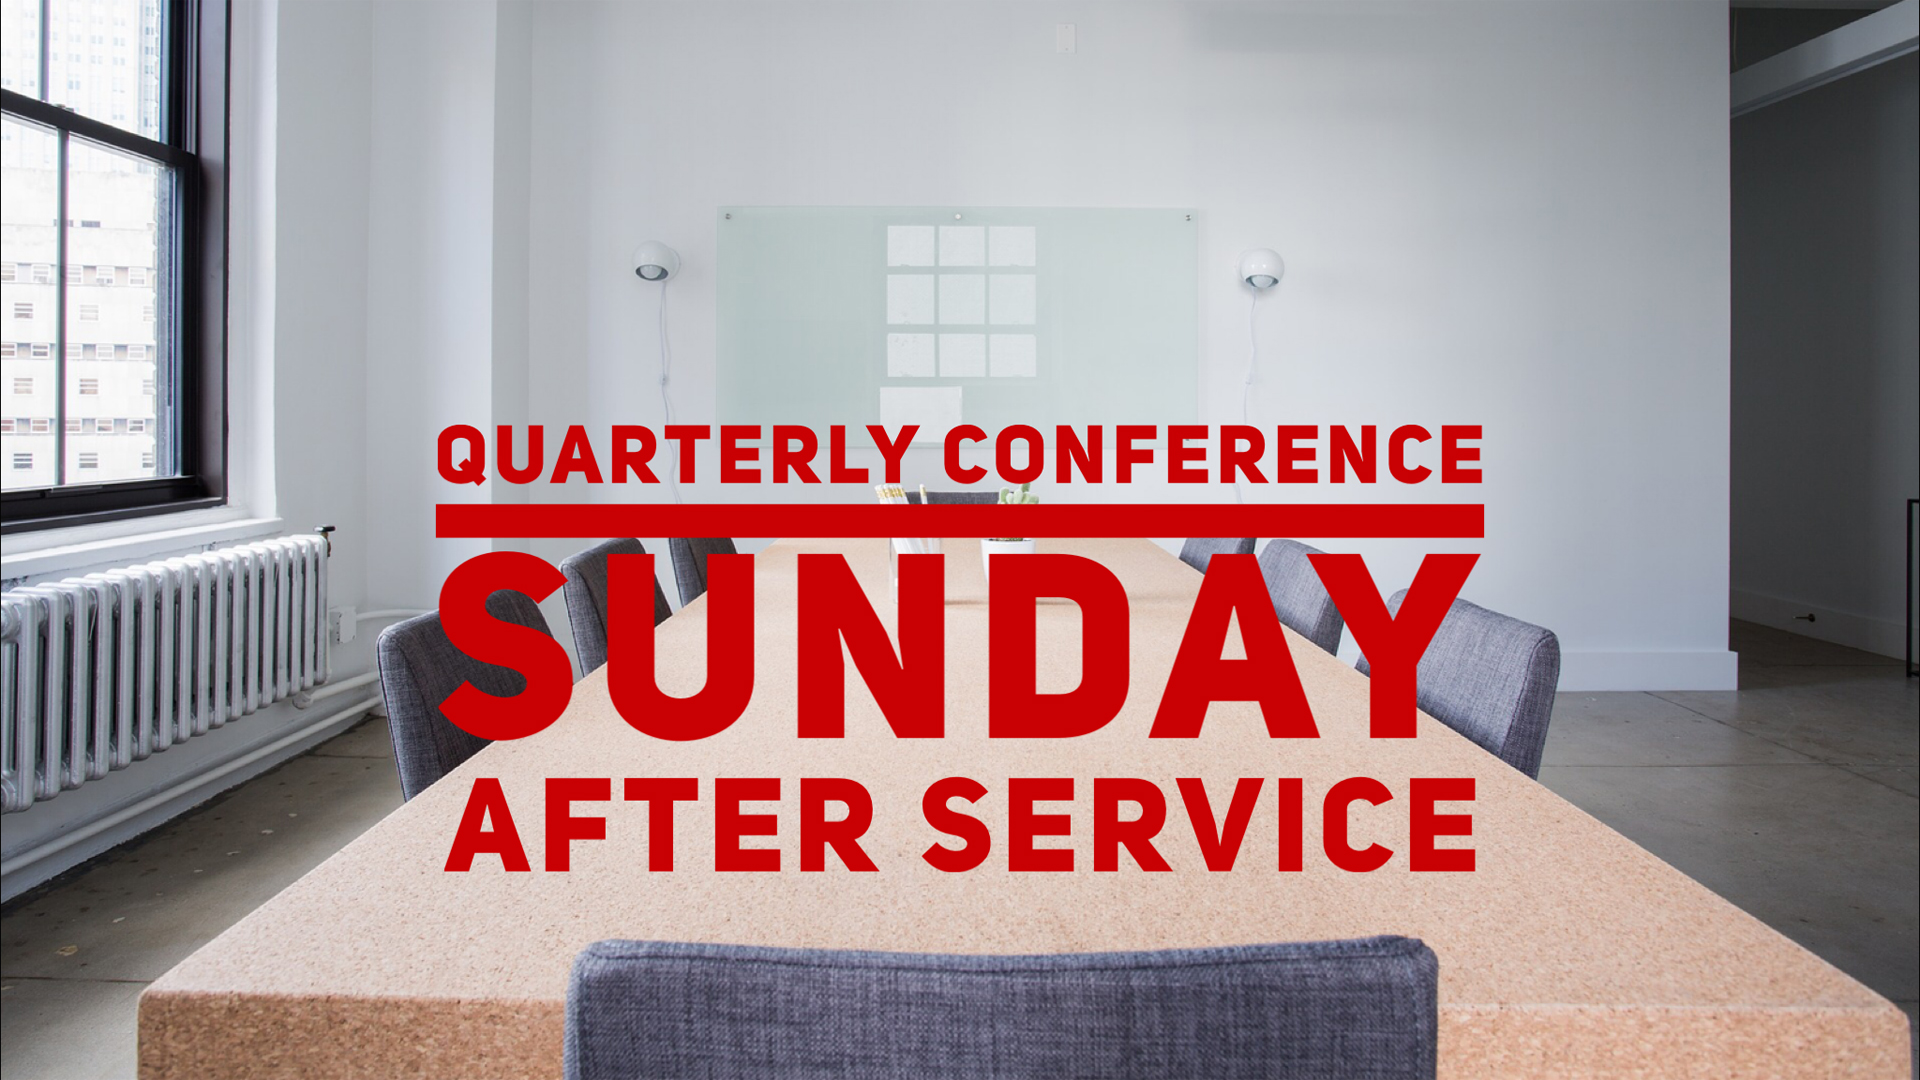 Conference Sunday